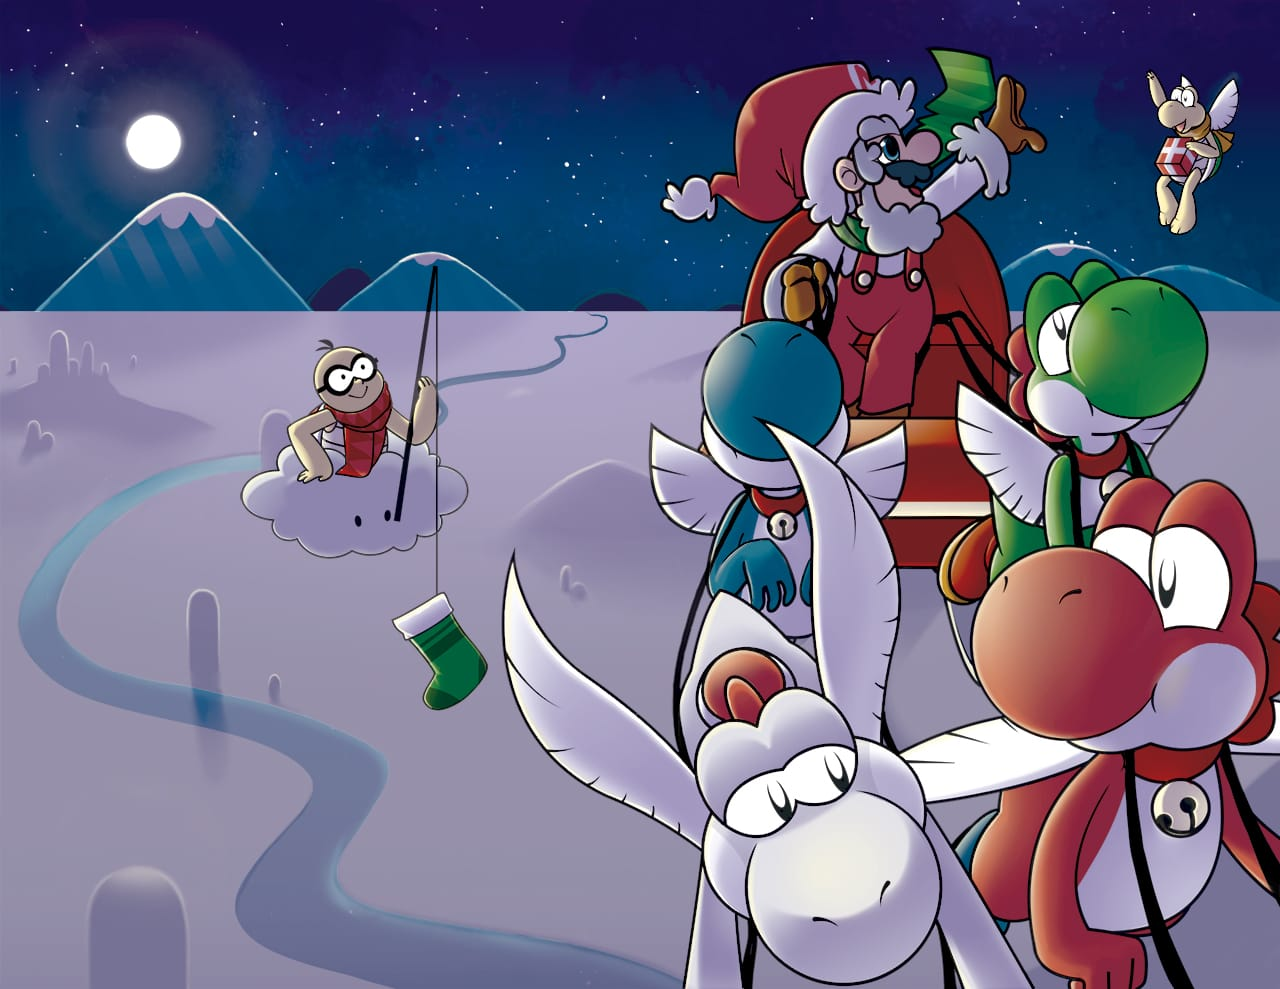 Mario dressed as Santa, riding a sleigh pulled by Yoshis. There is a Lakitu and a flying Koopa Troopa in the snowy background.